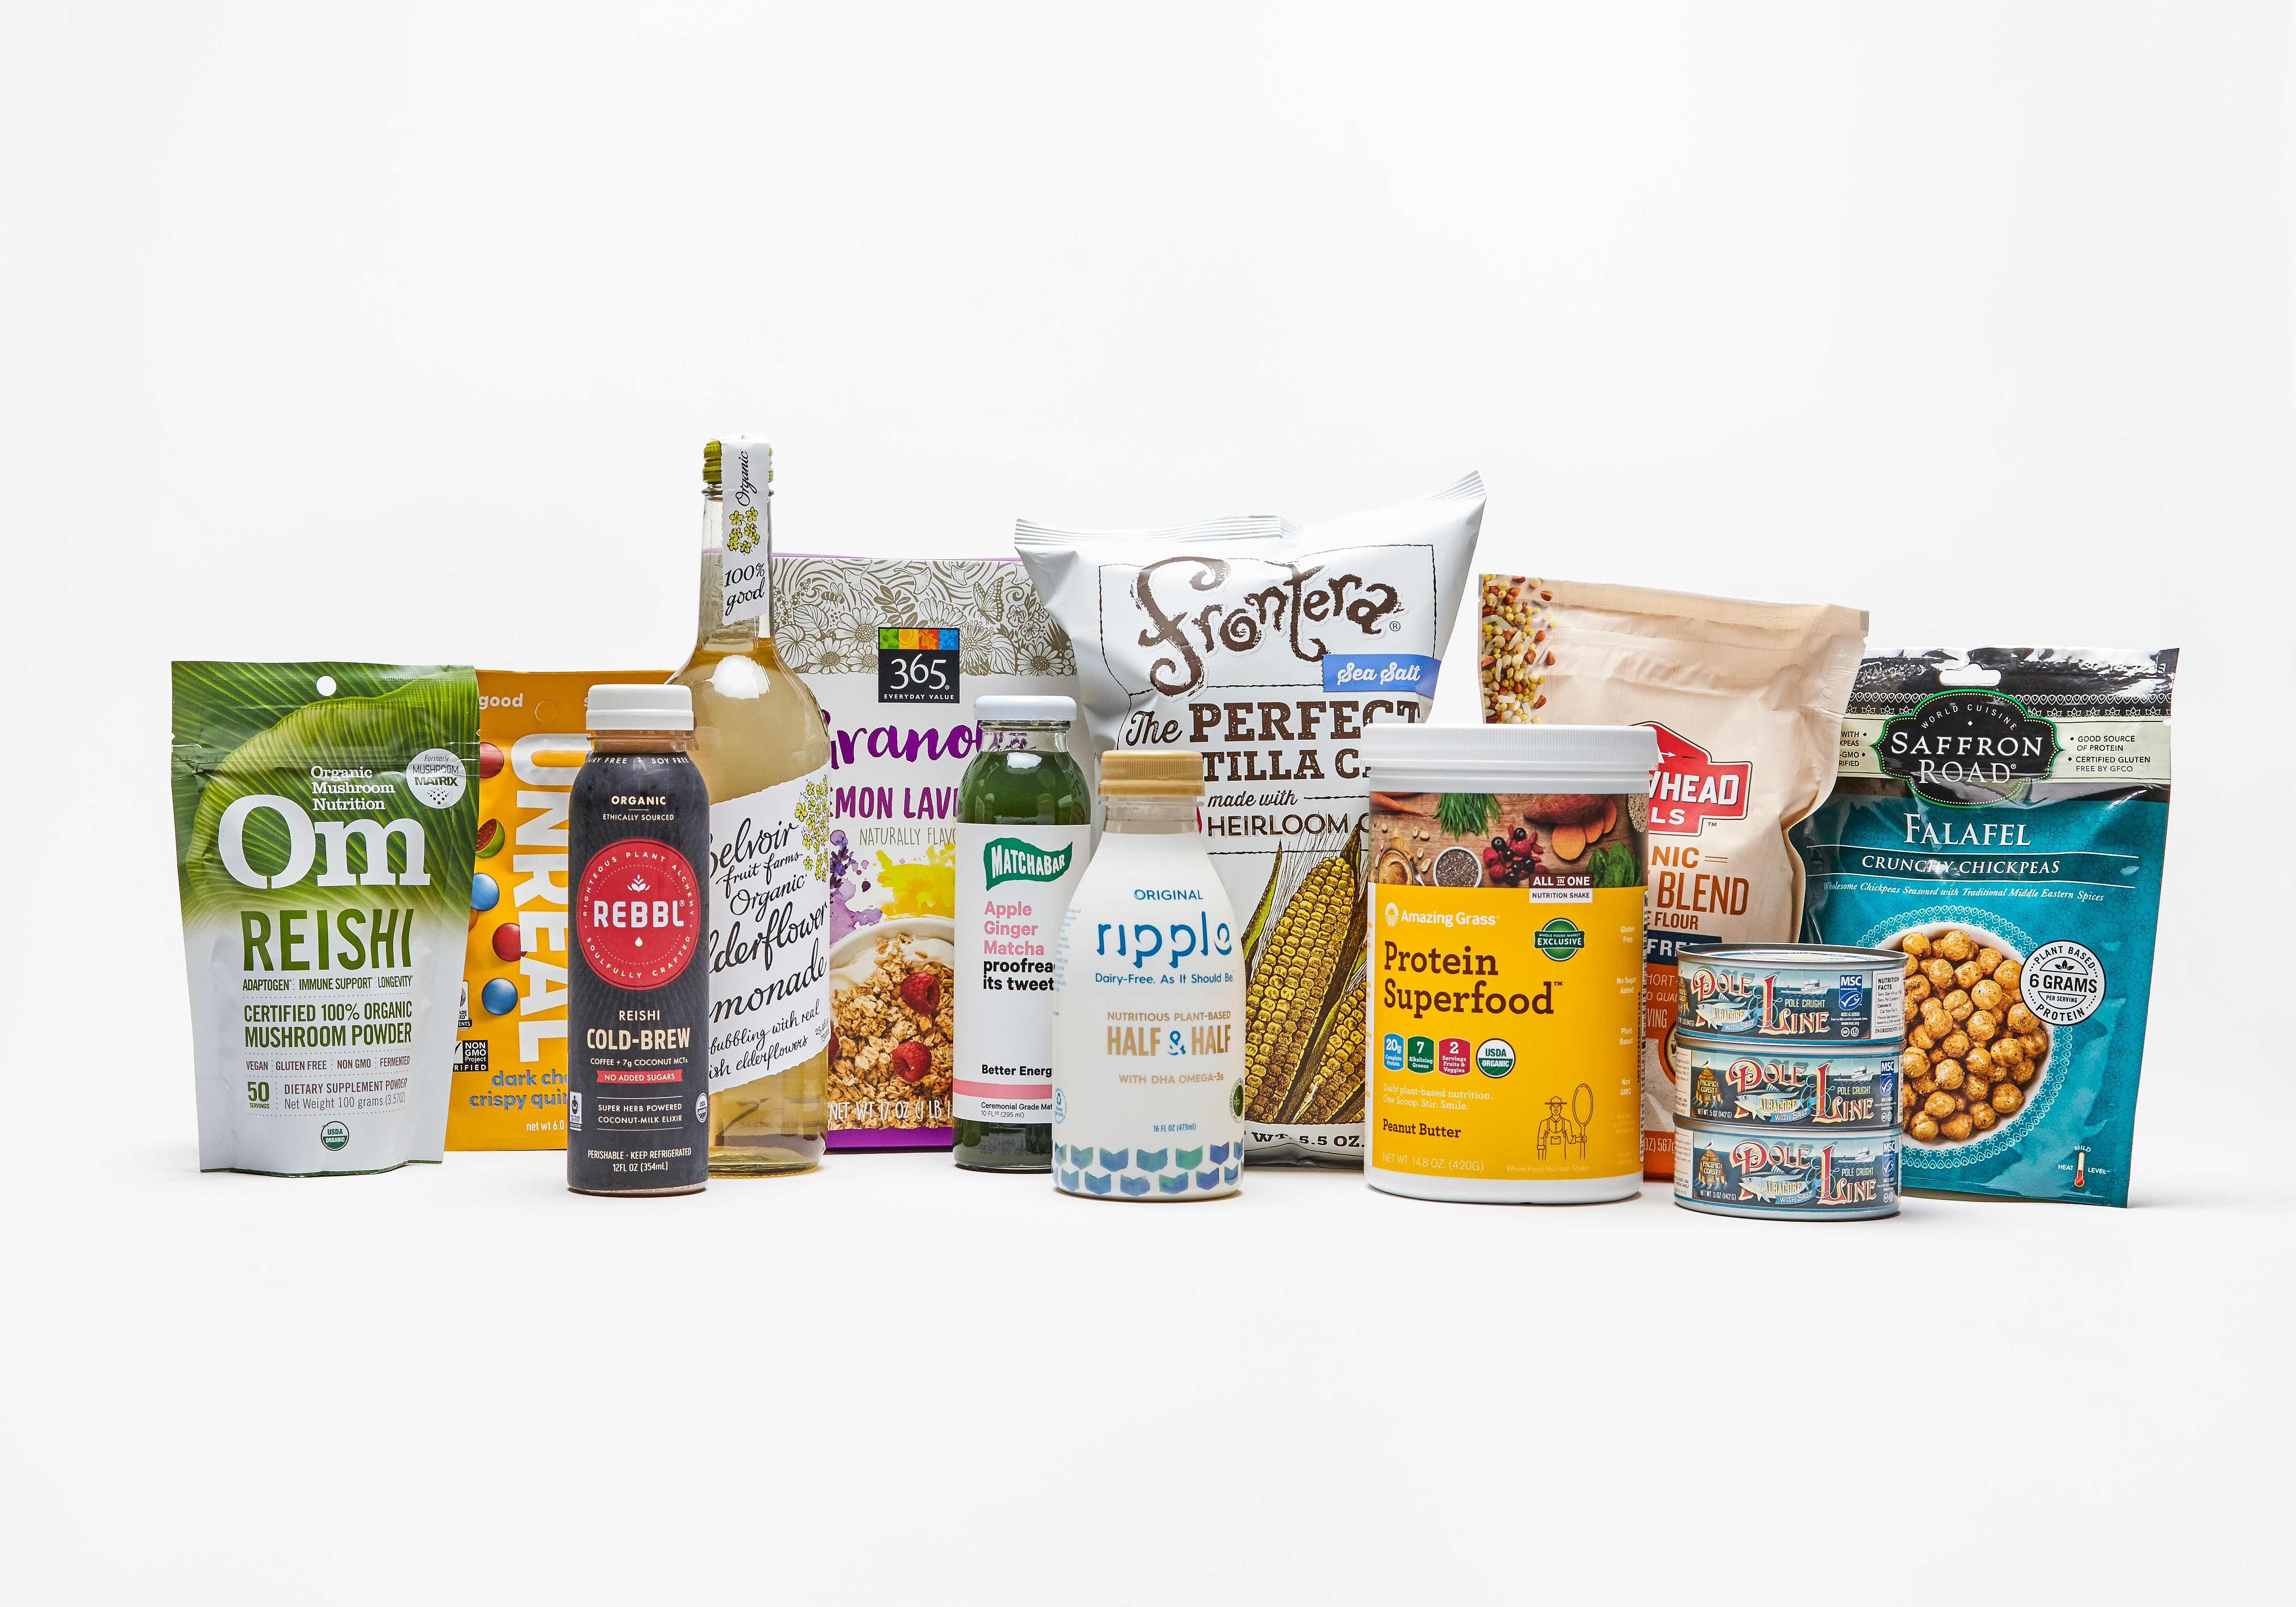 Technology Management Image: Whole Foods Market Reveals Top 10 Food Trends For 2018